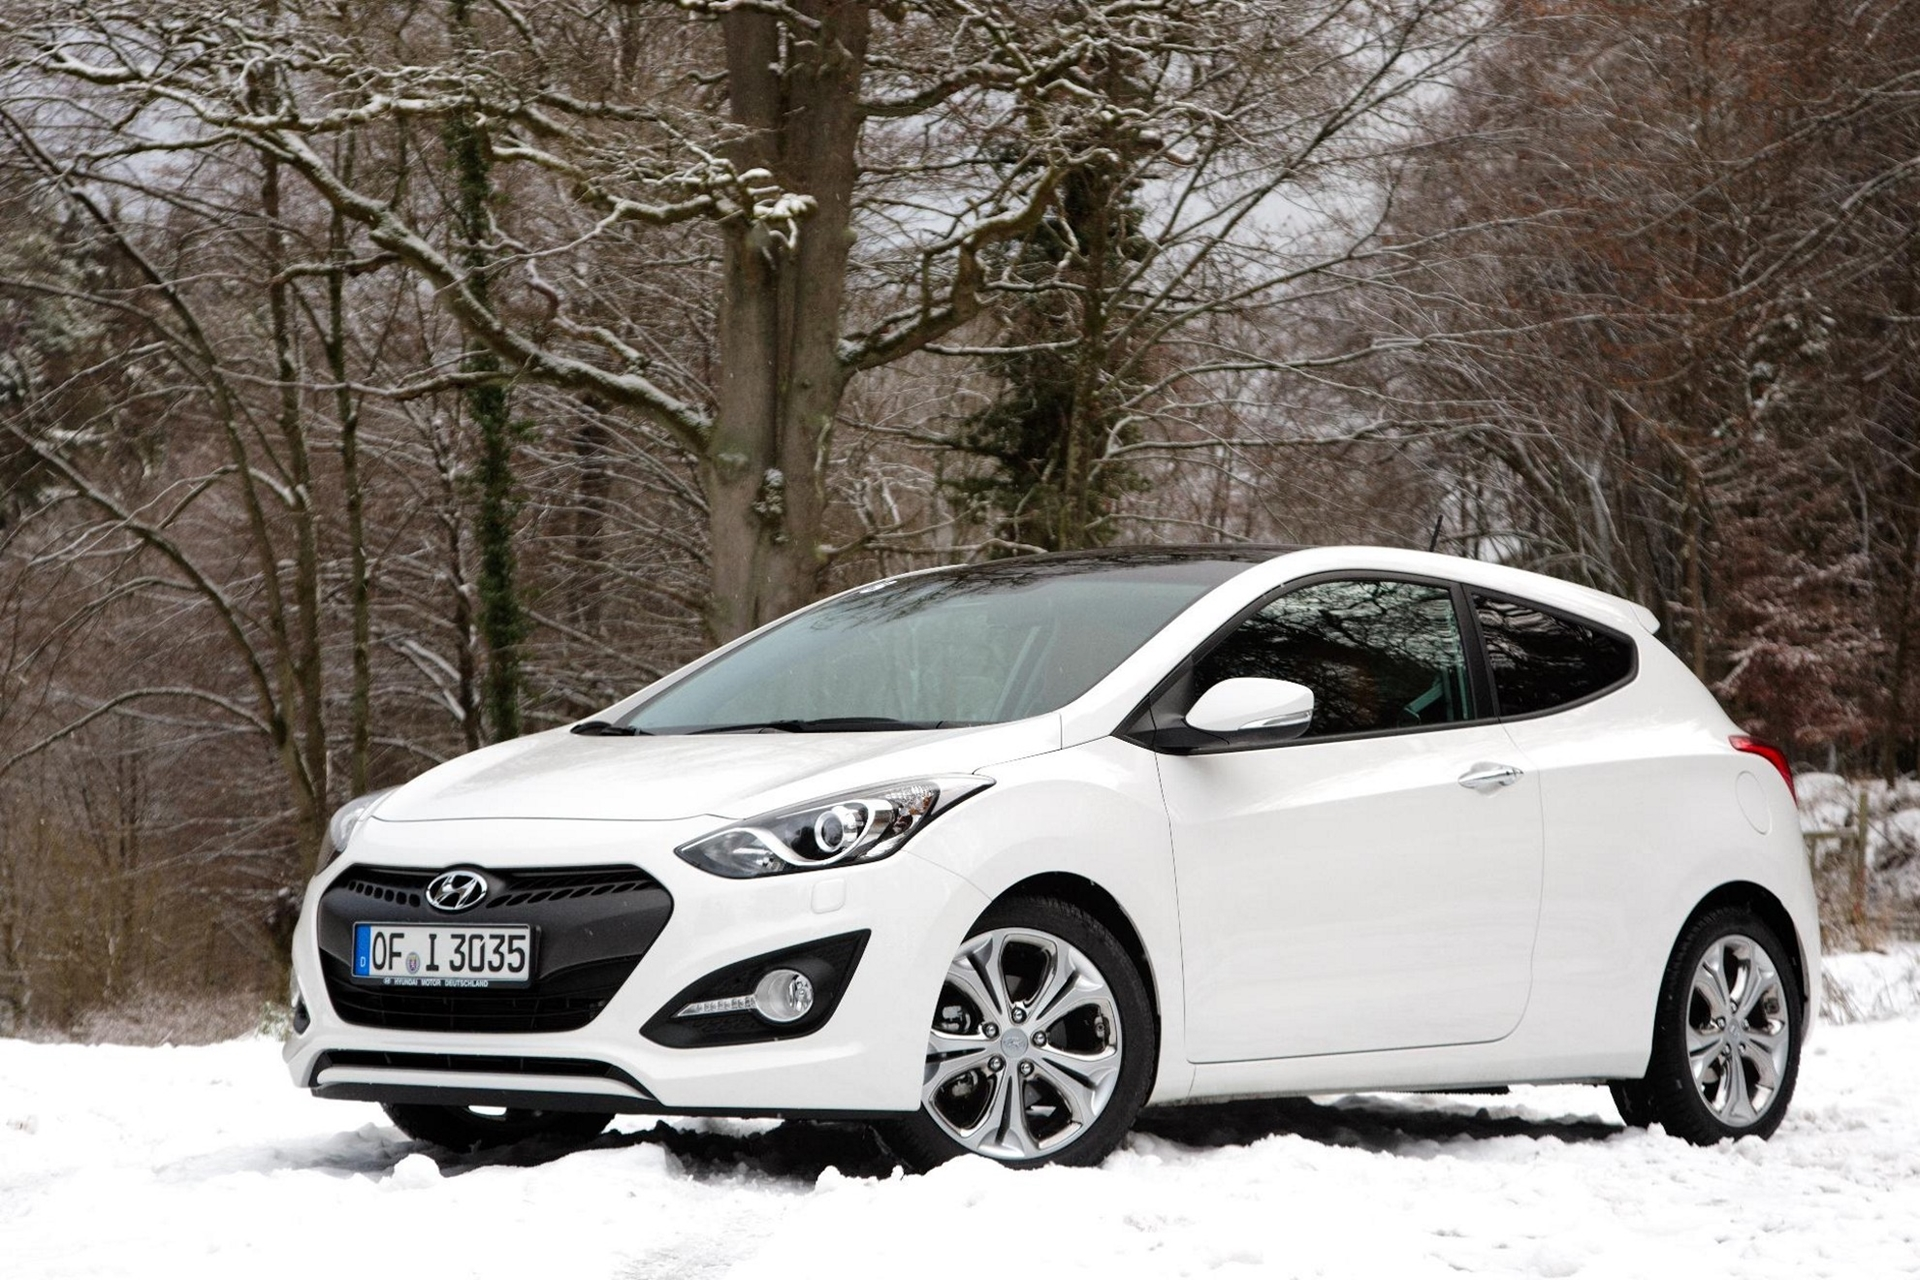 Hyundai Car of the year 2013